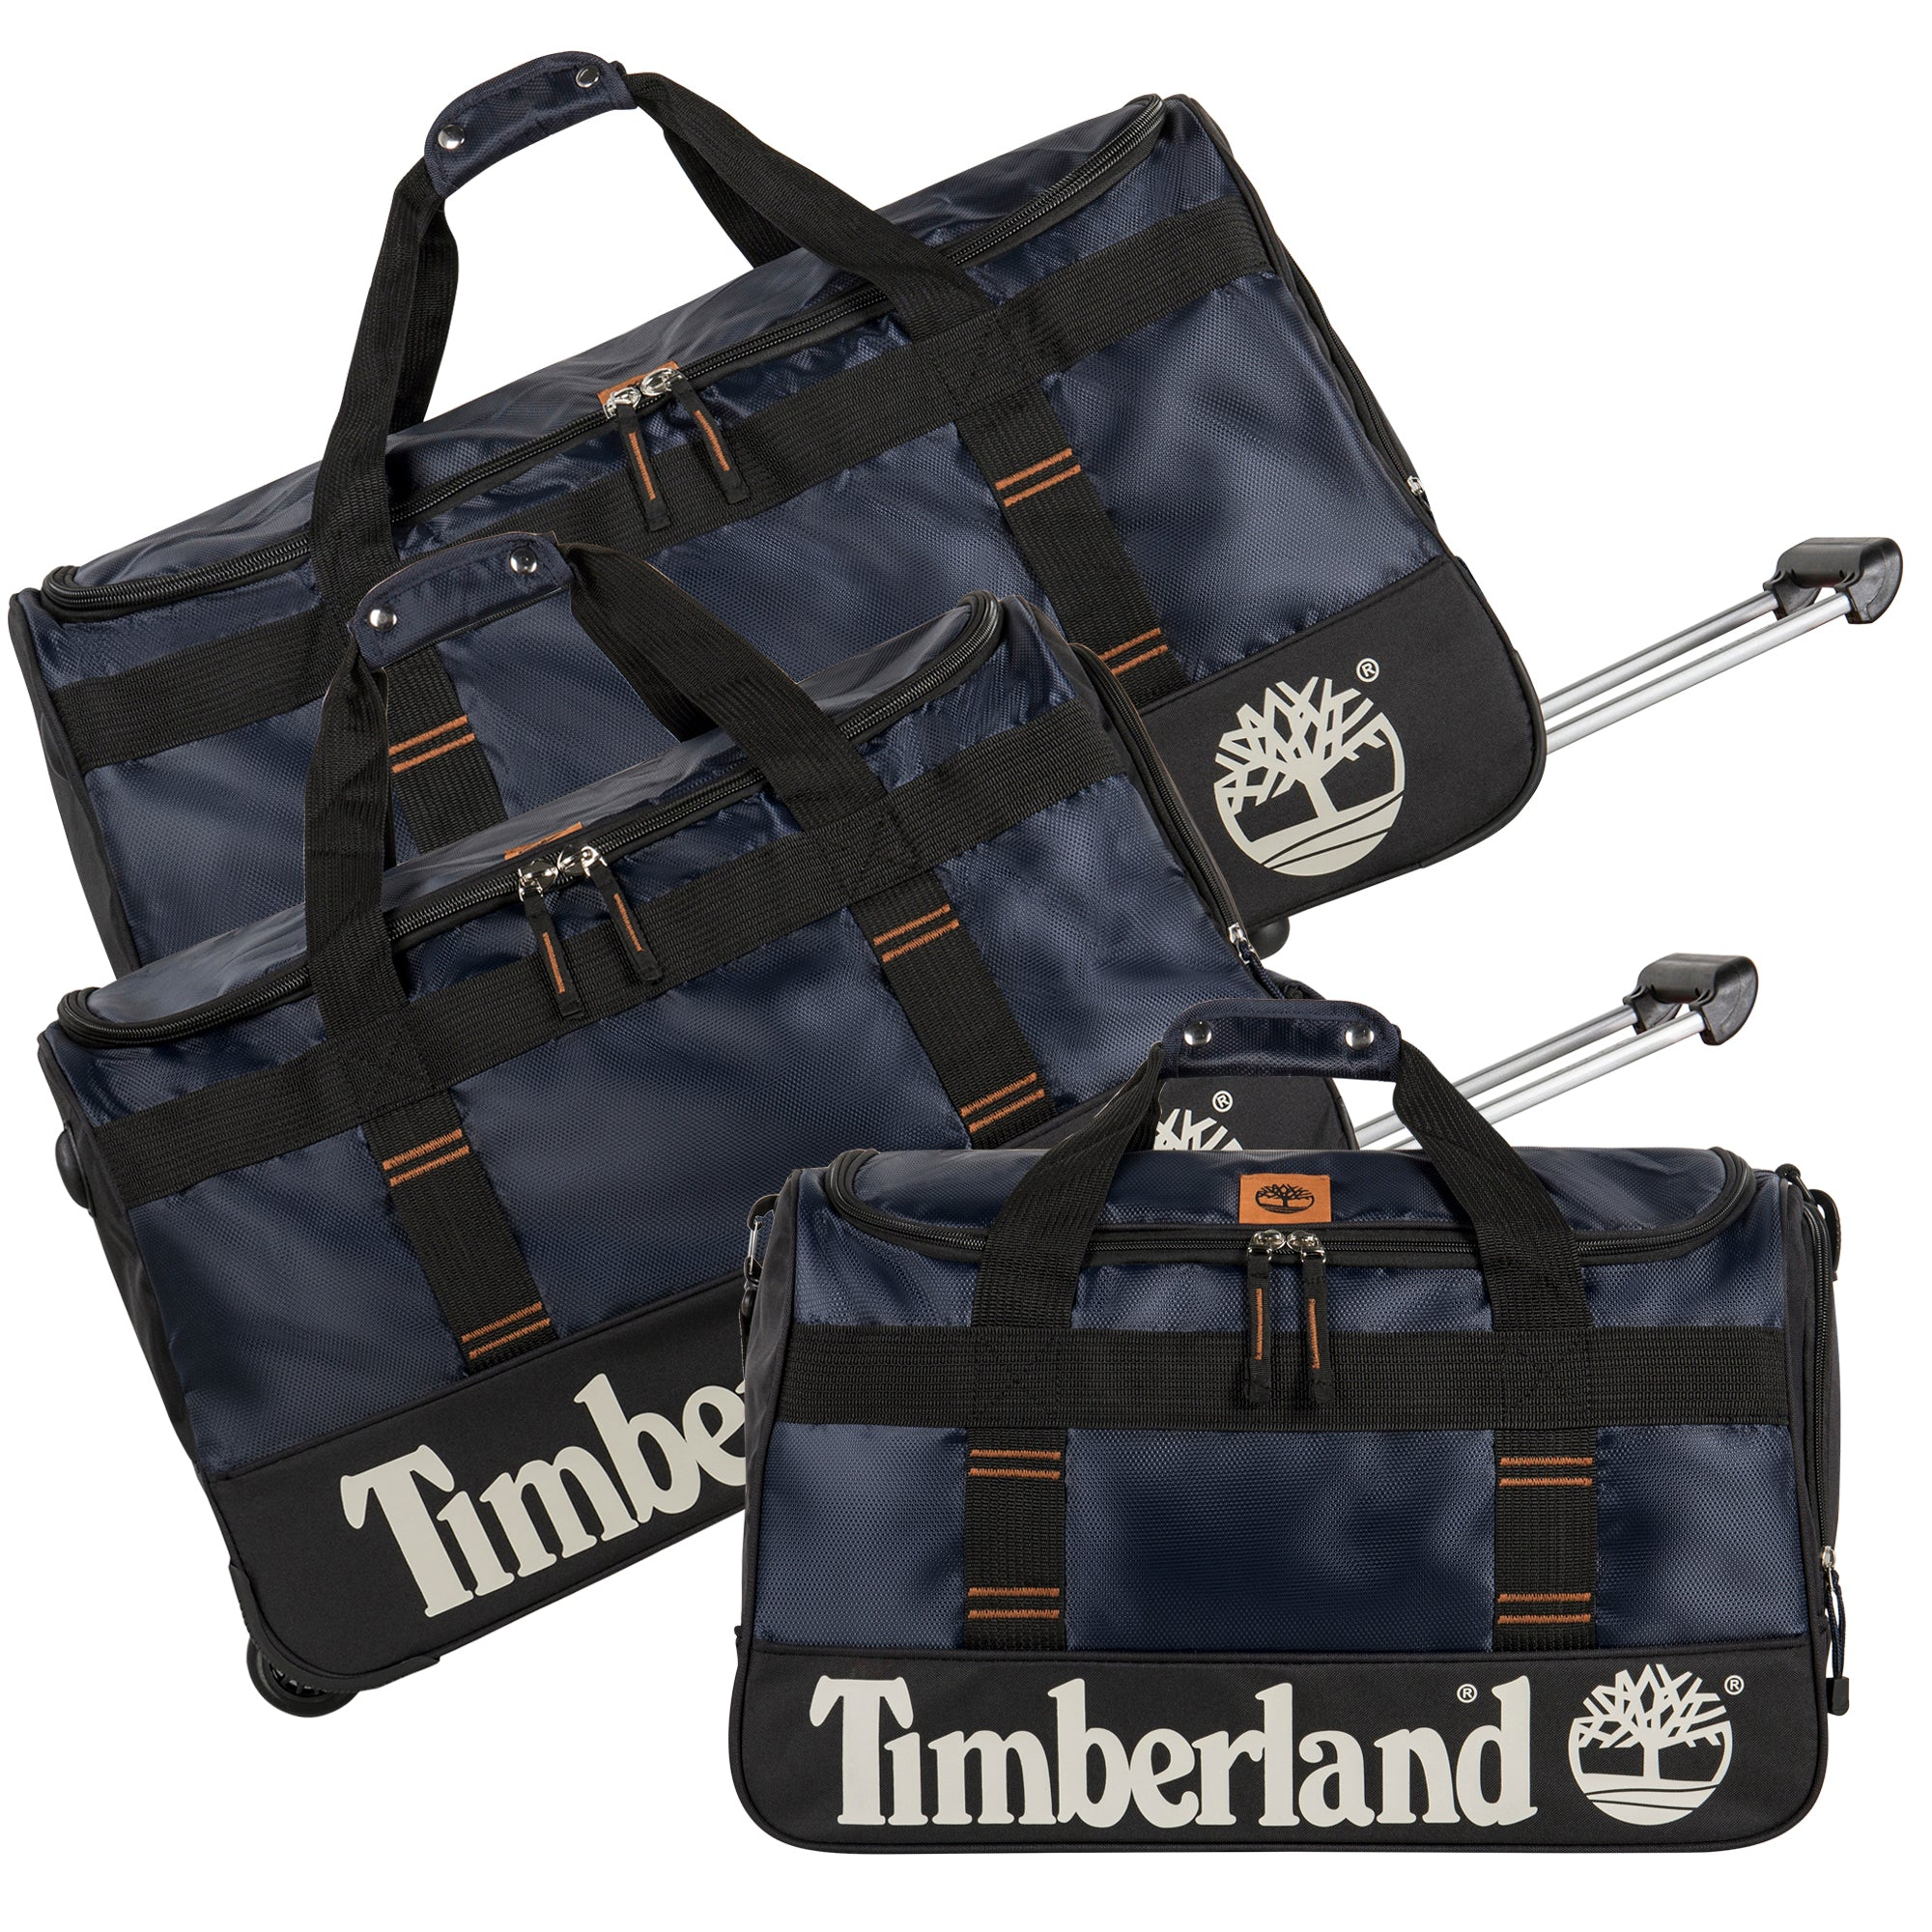 71a141d2ad Timberland Jay Peak 3 Piece Wheeled Duffle Set – Luggage Guy